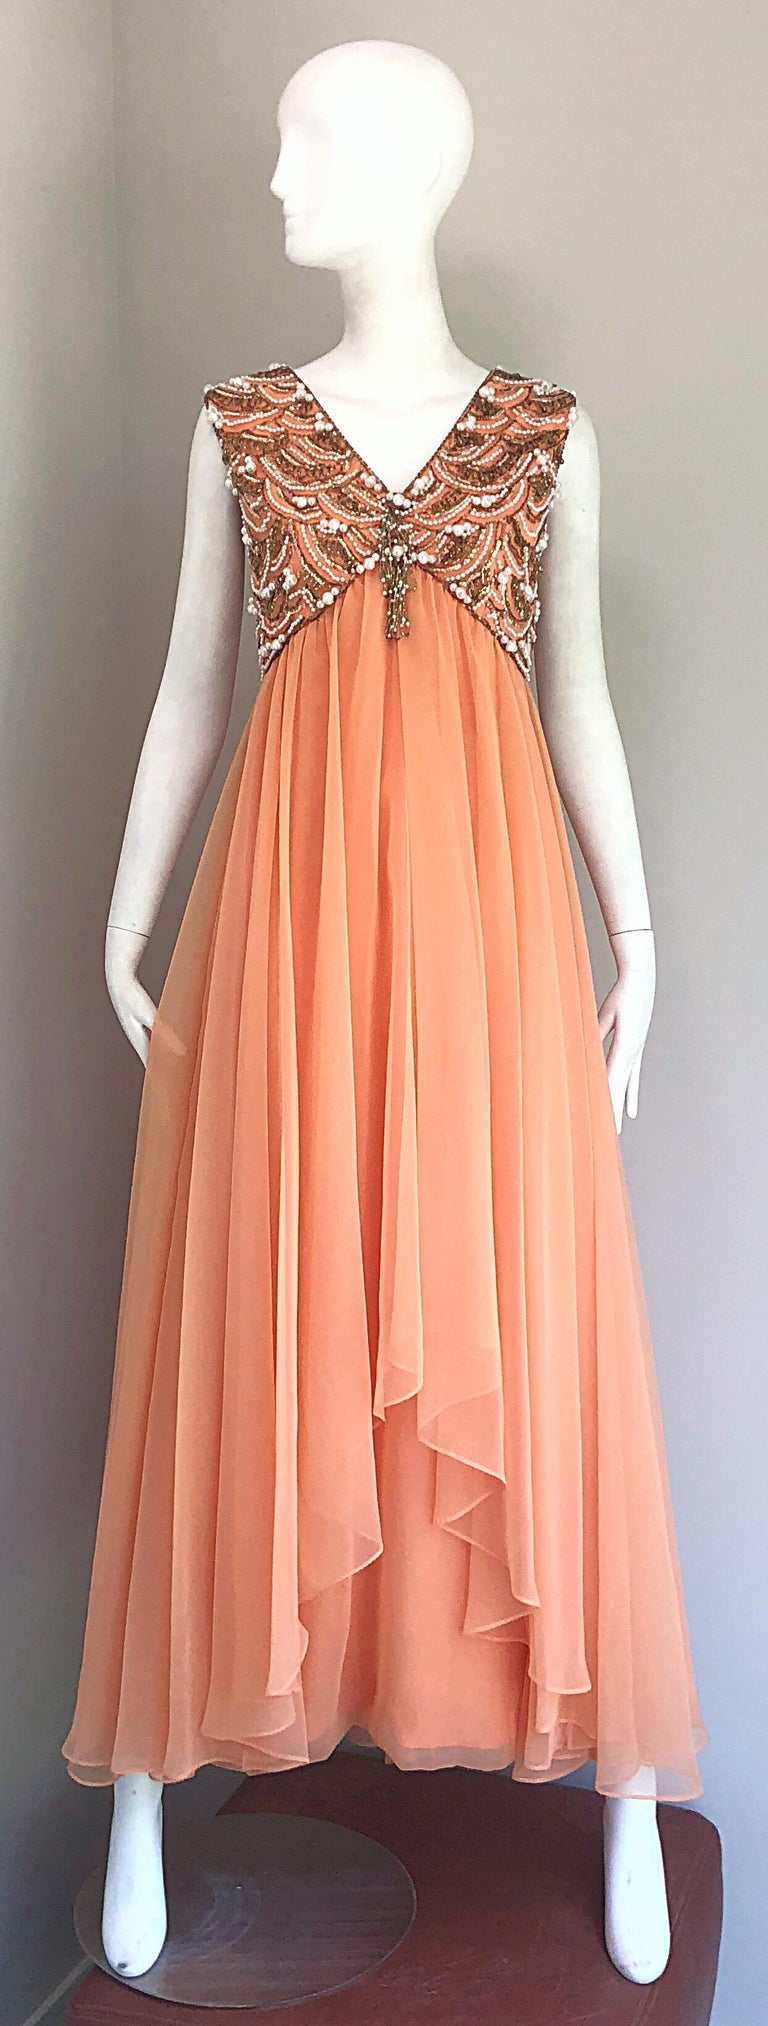 Stunning vintage 60s ISABELL GERHART of Houston  sherbet / coral pink colored chiffon beaded sleeveless evening gown! Fitted beaded bodice, with layers and layers of luxurious chiffon that form a free flowing casculating hem at front center and